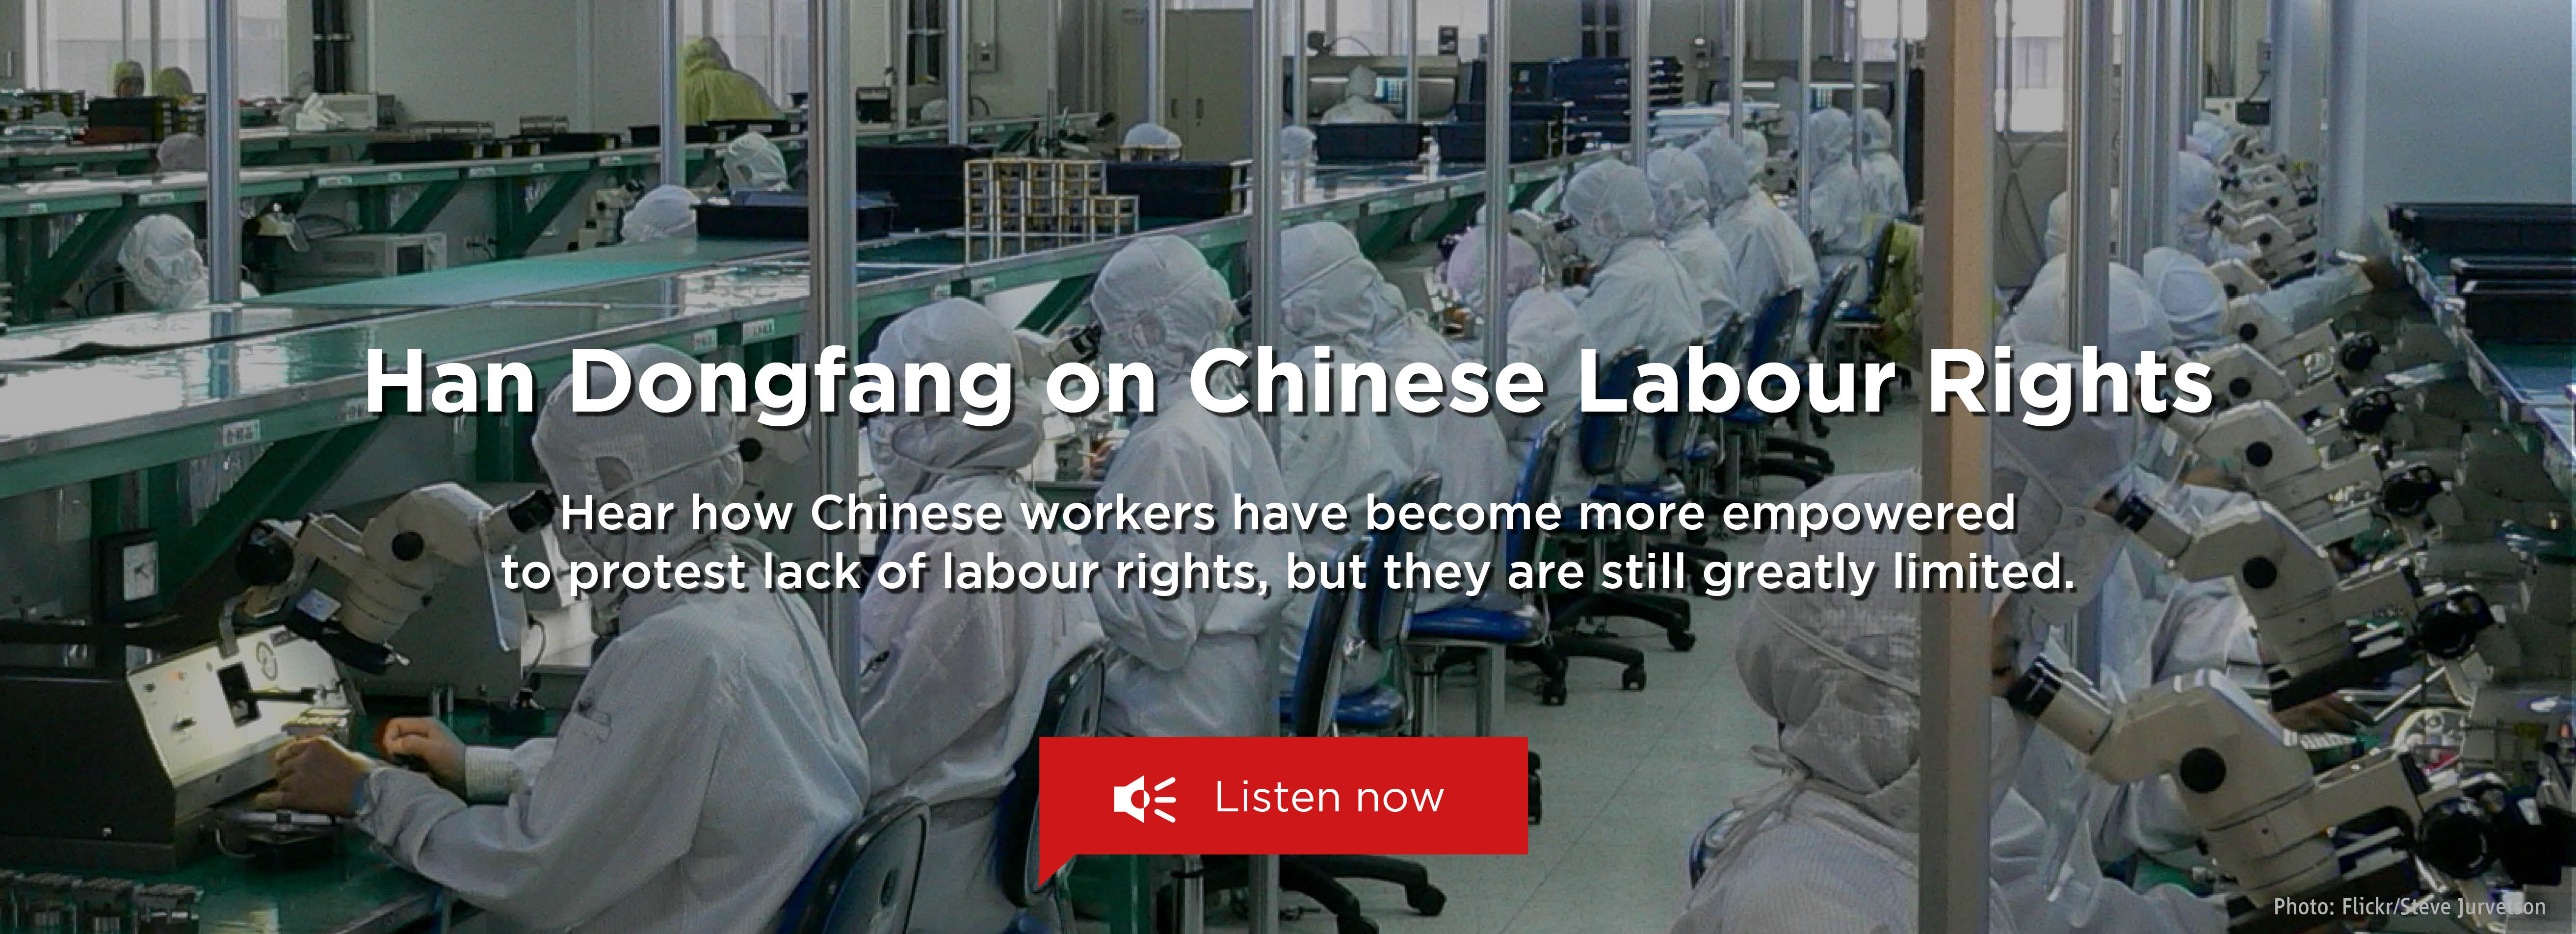 Han Dongfang on Chinese Labour Rights